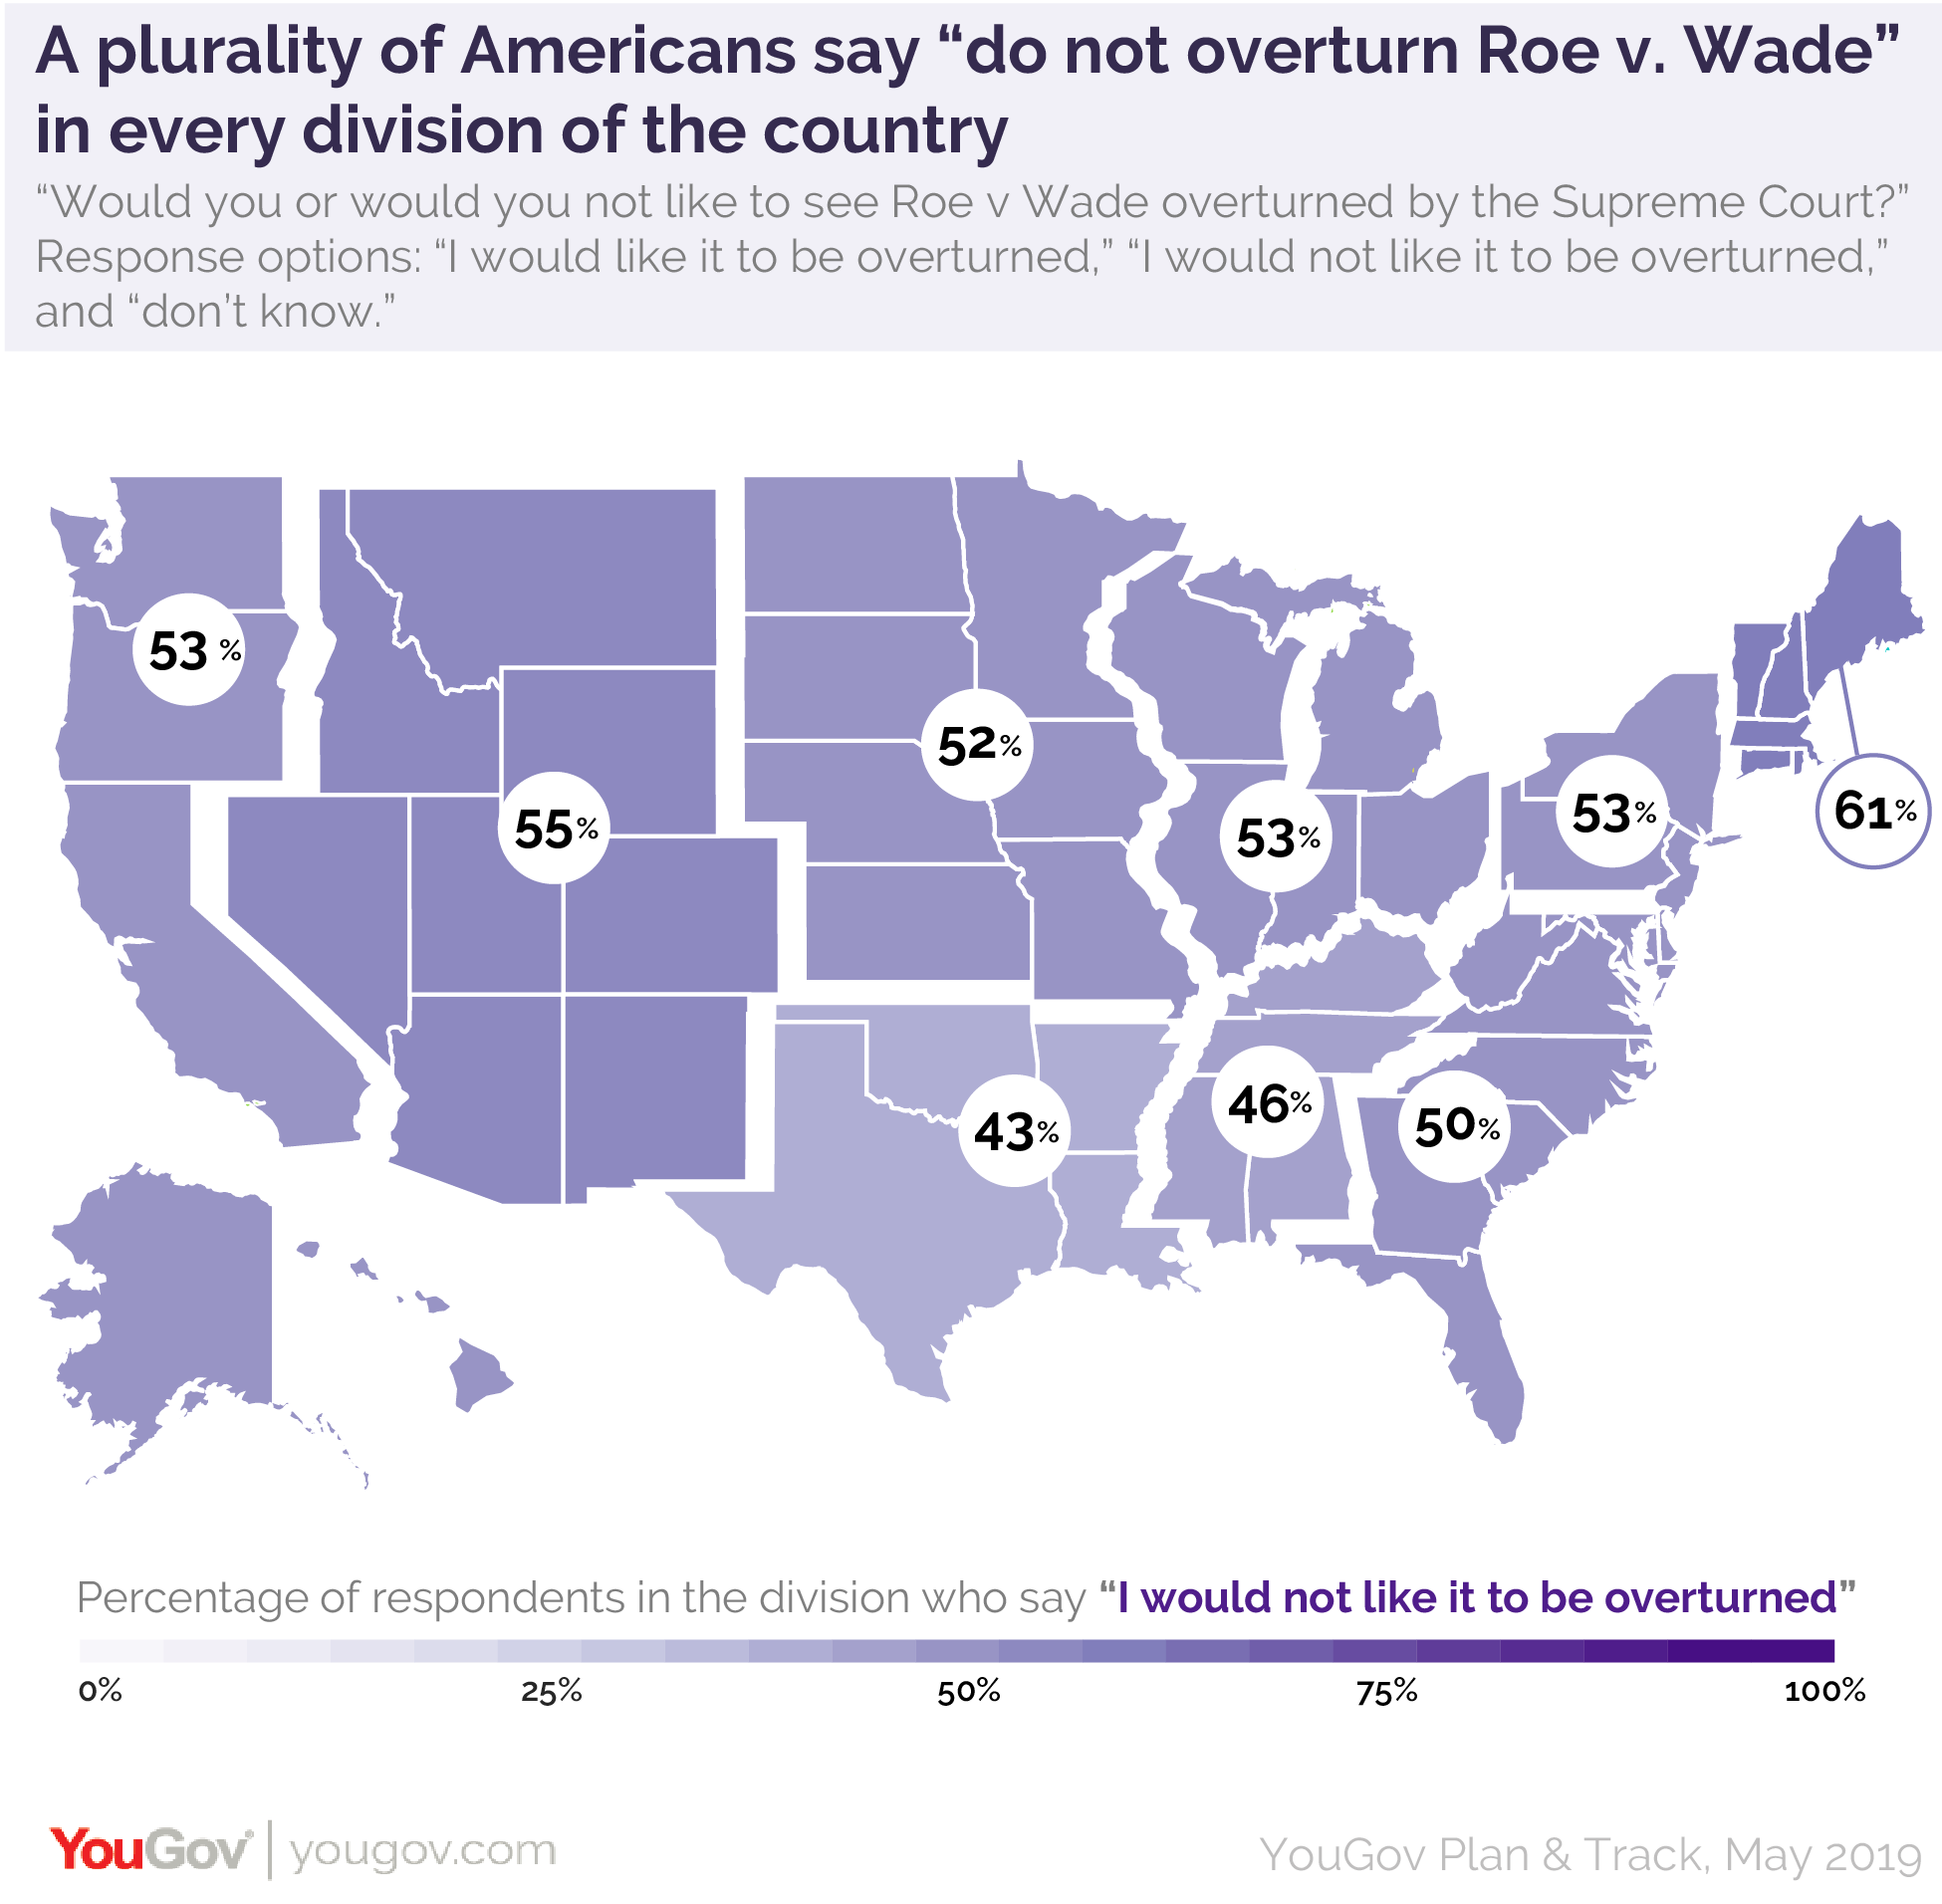 "A plurality of Americans say ""do not overturn Roe v. Wade"" in every division of the country, according to YouGov data"